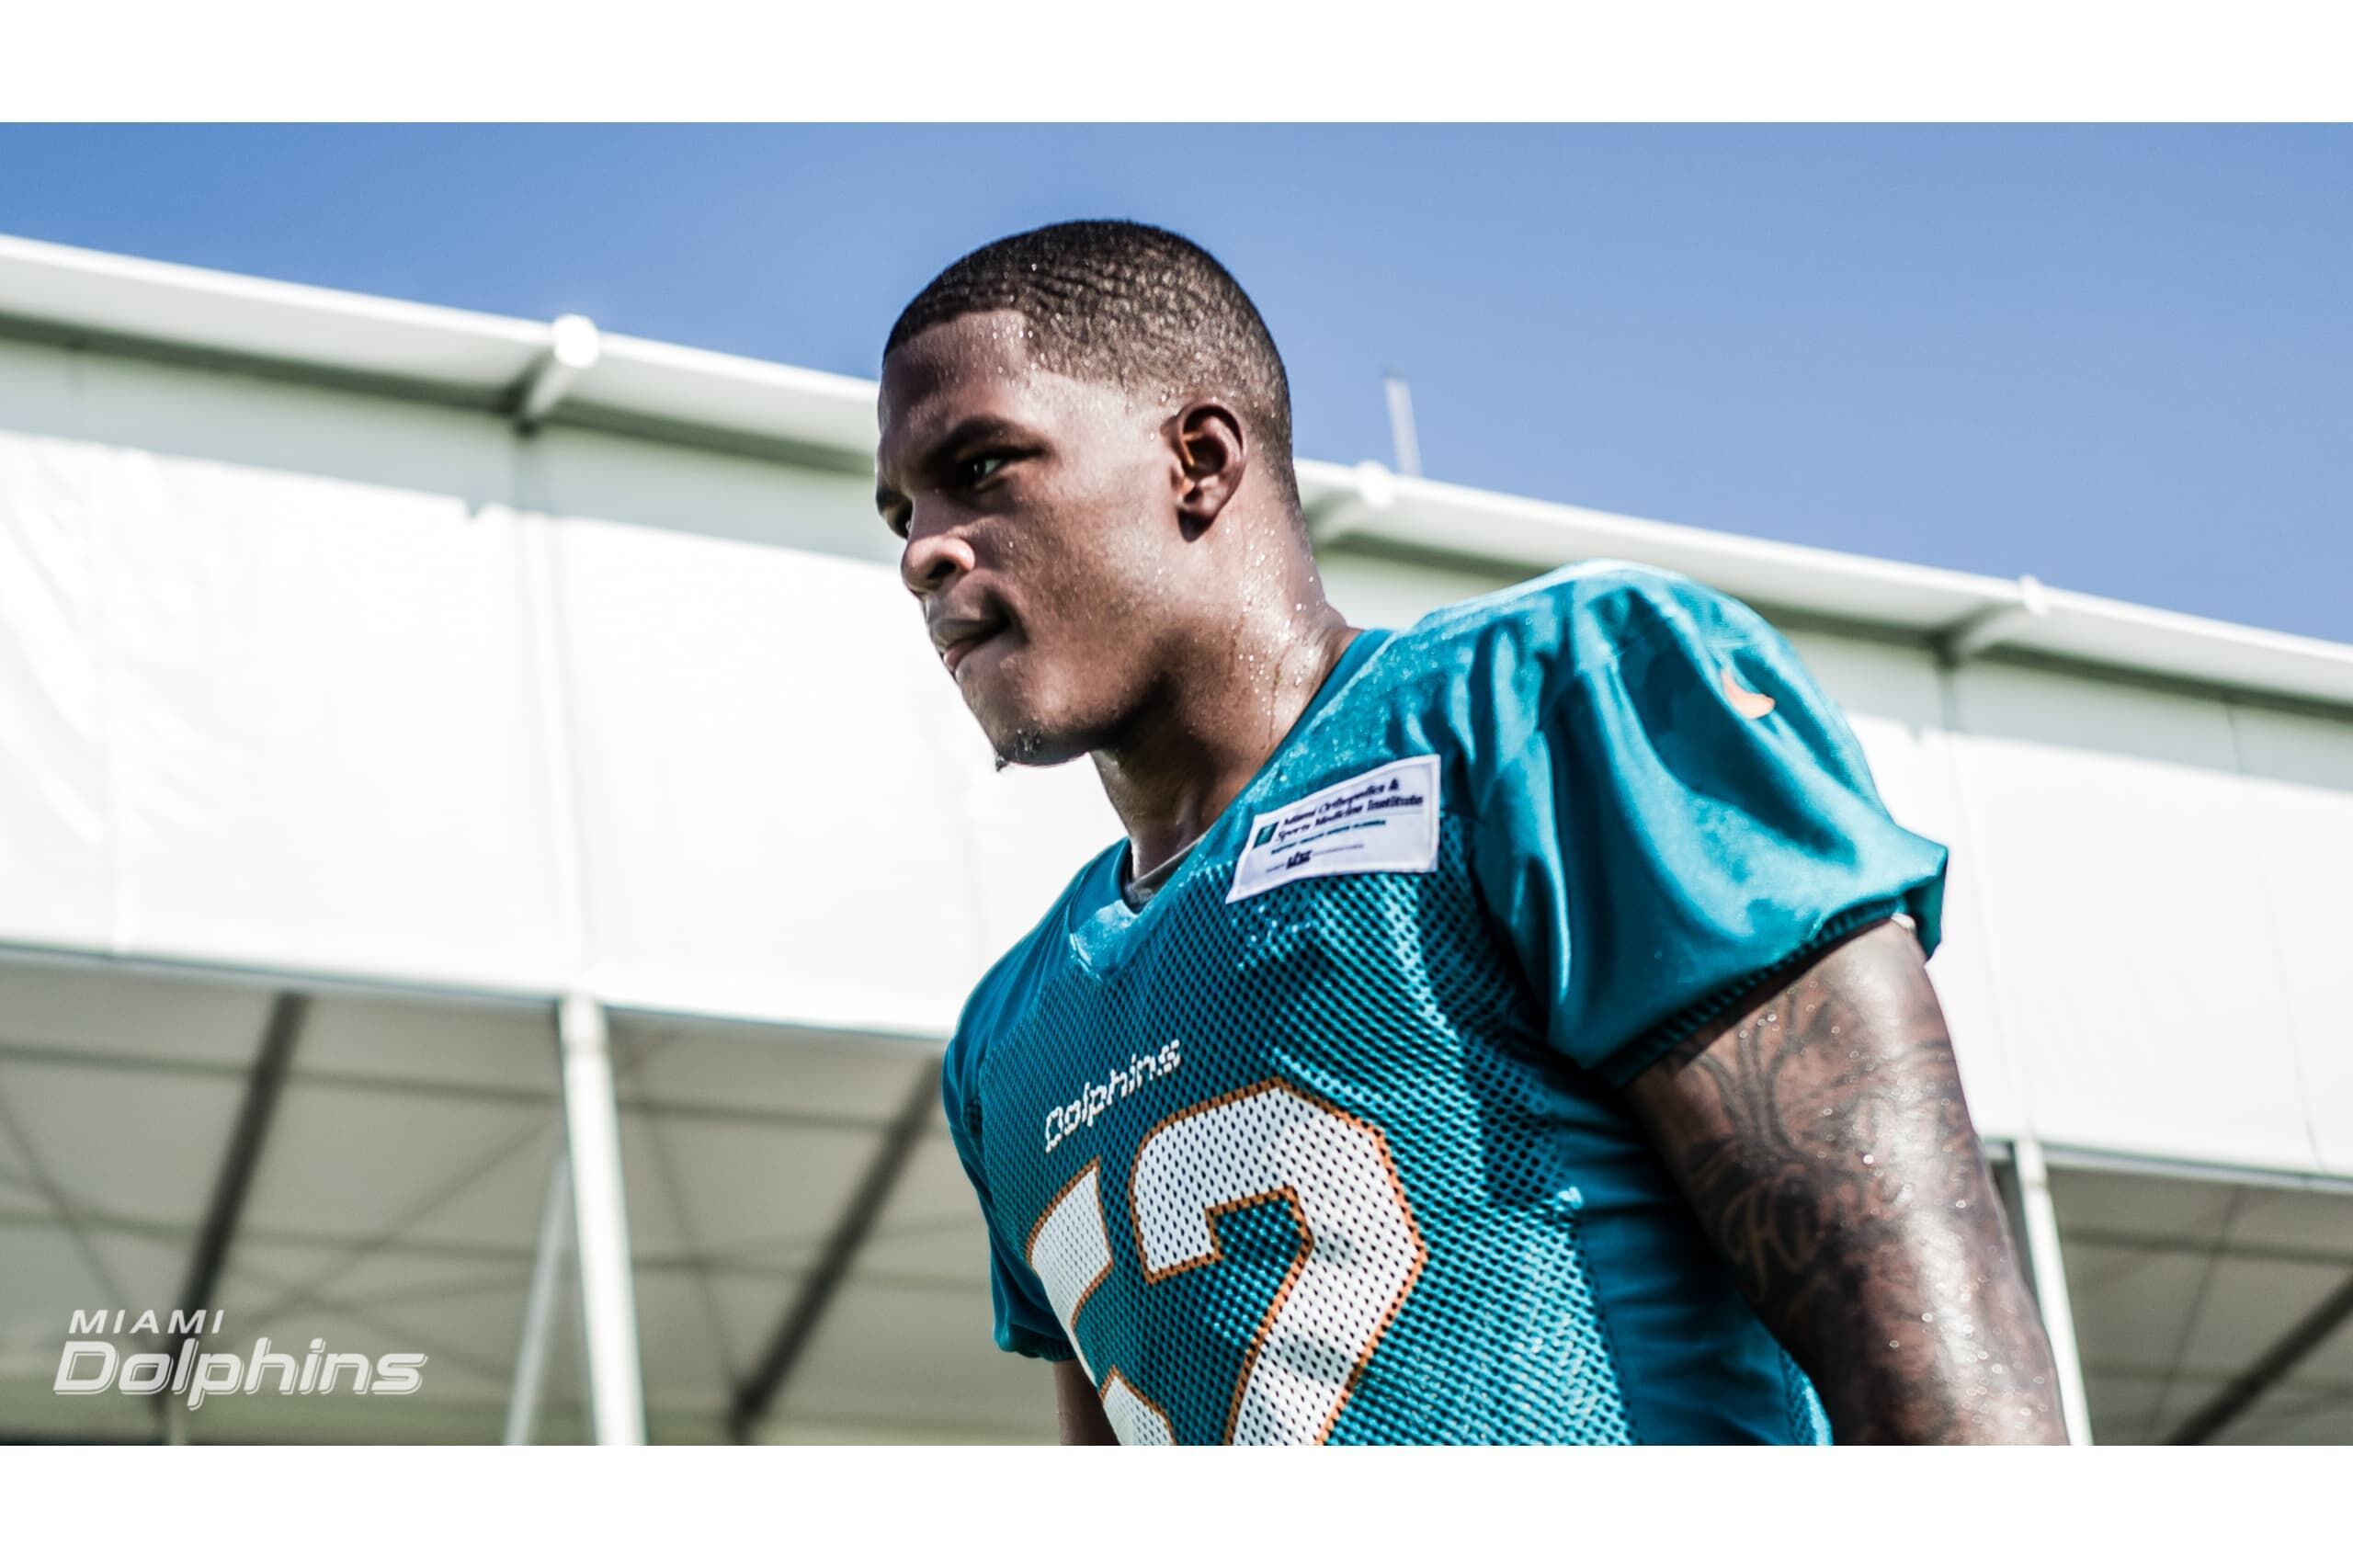 Recap of Miami Dolphins training camp after a week